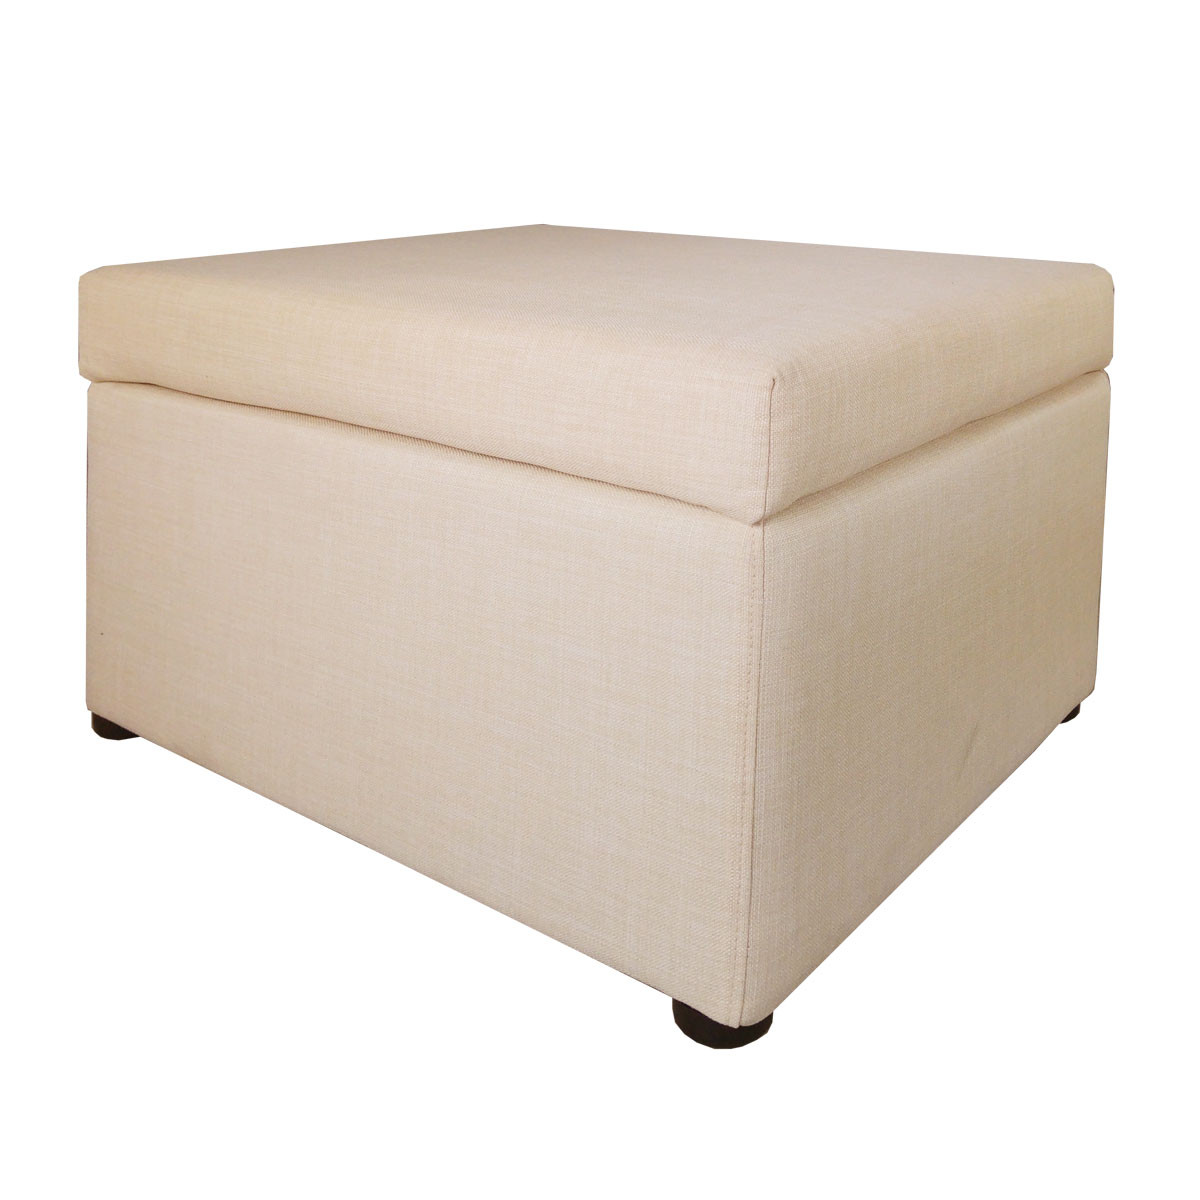 Ottoman Coffee Table Beige Furniture Home D Cor Fortytwo